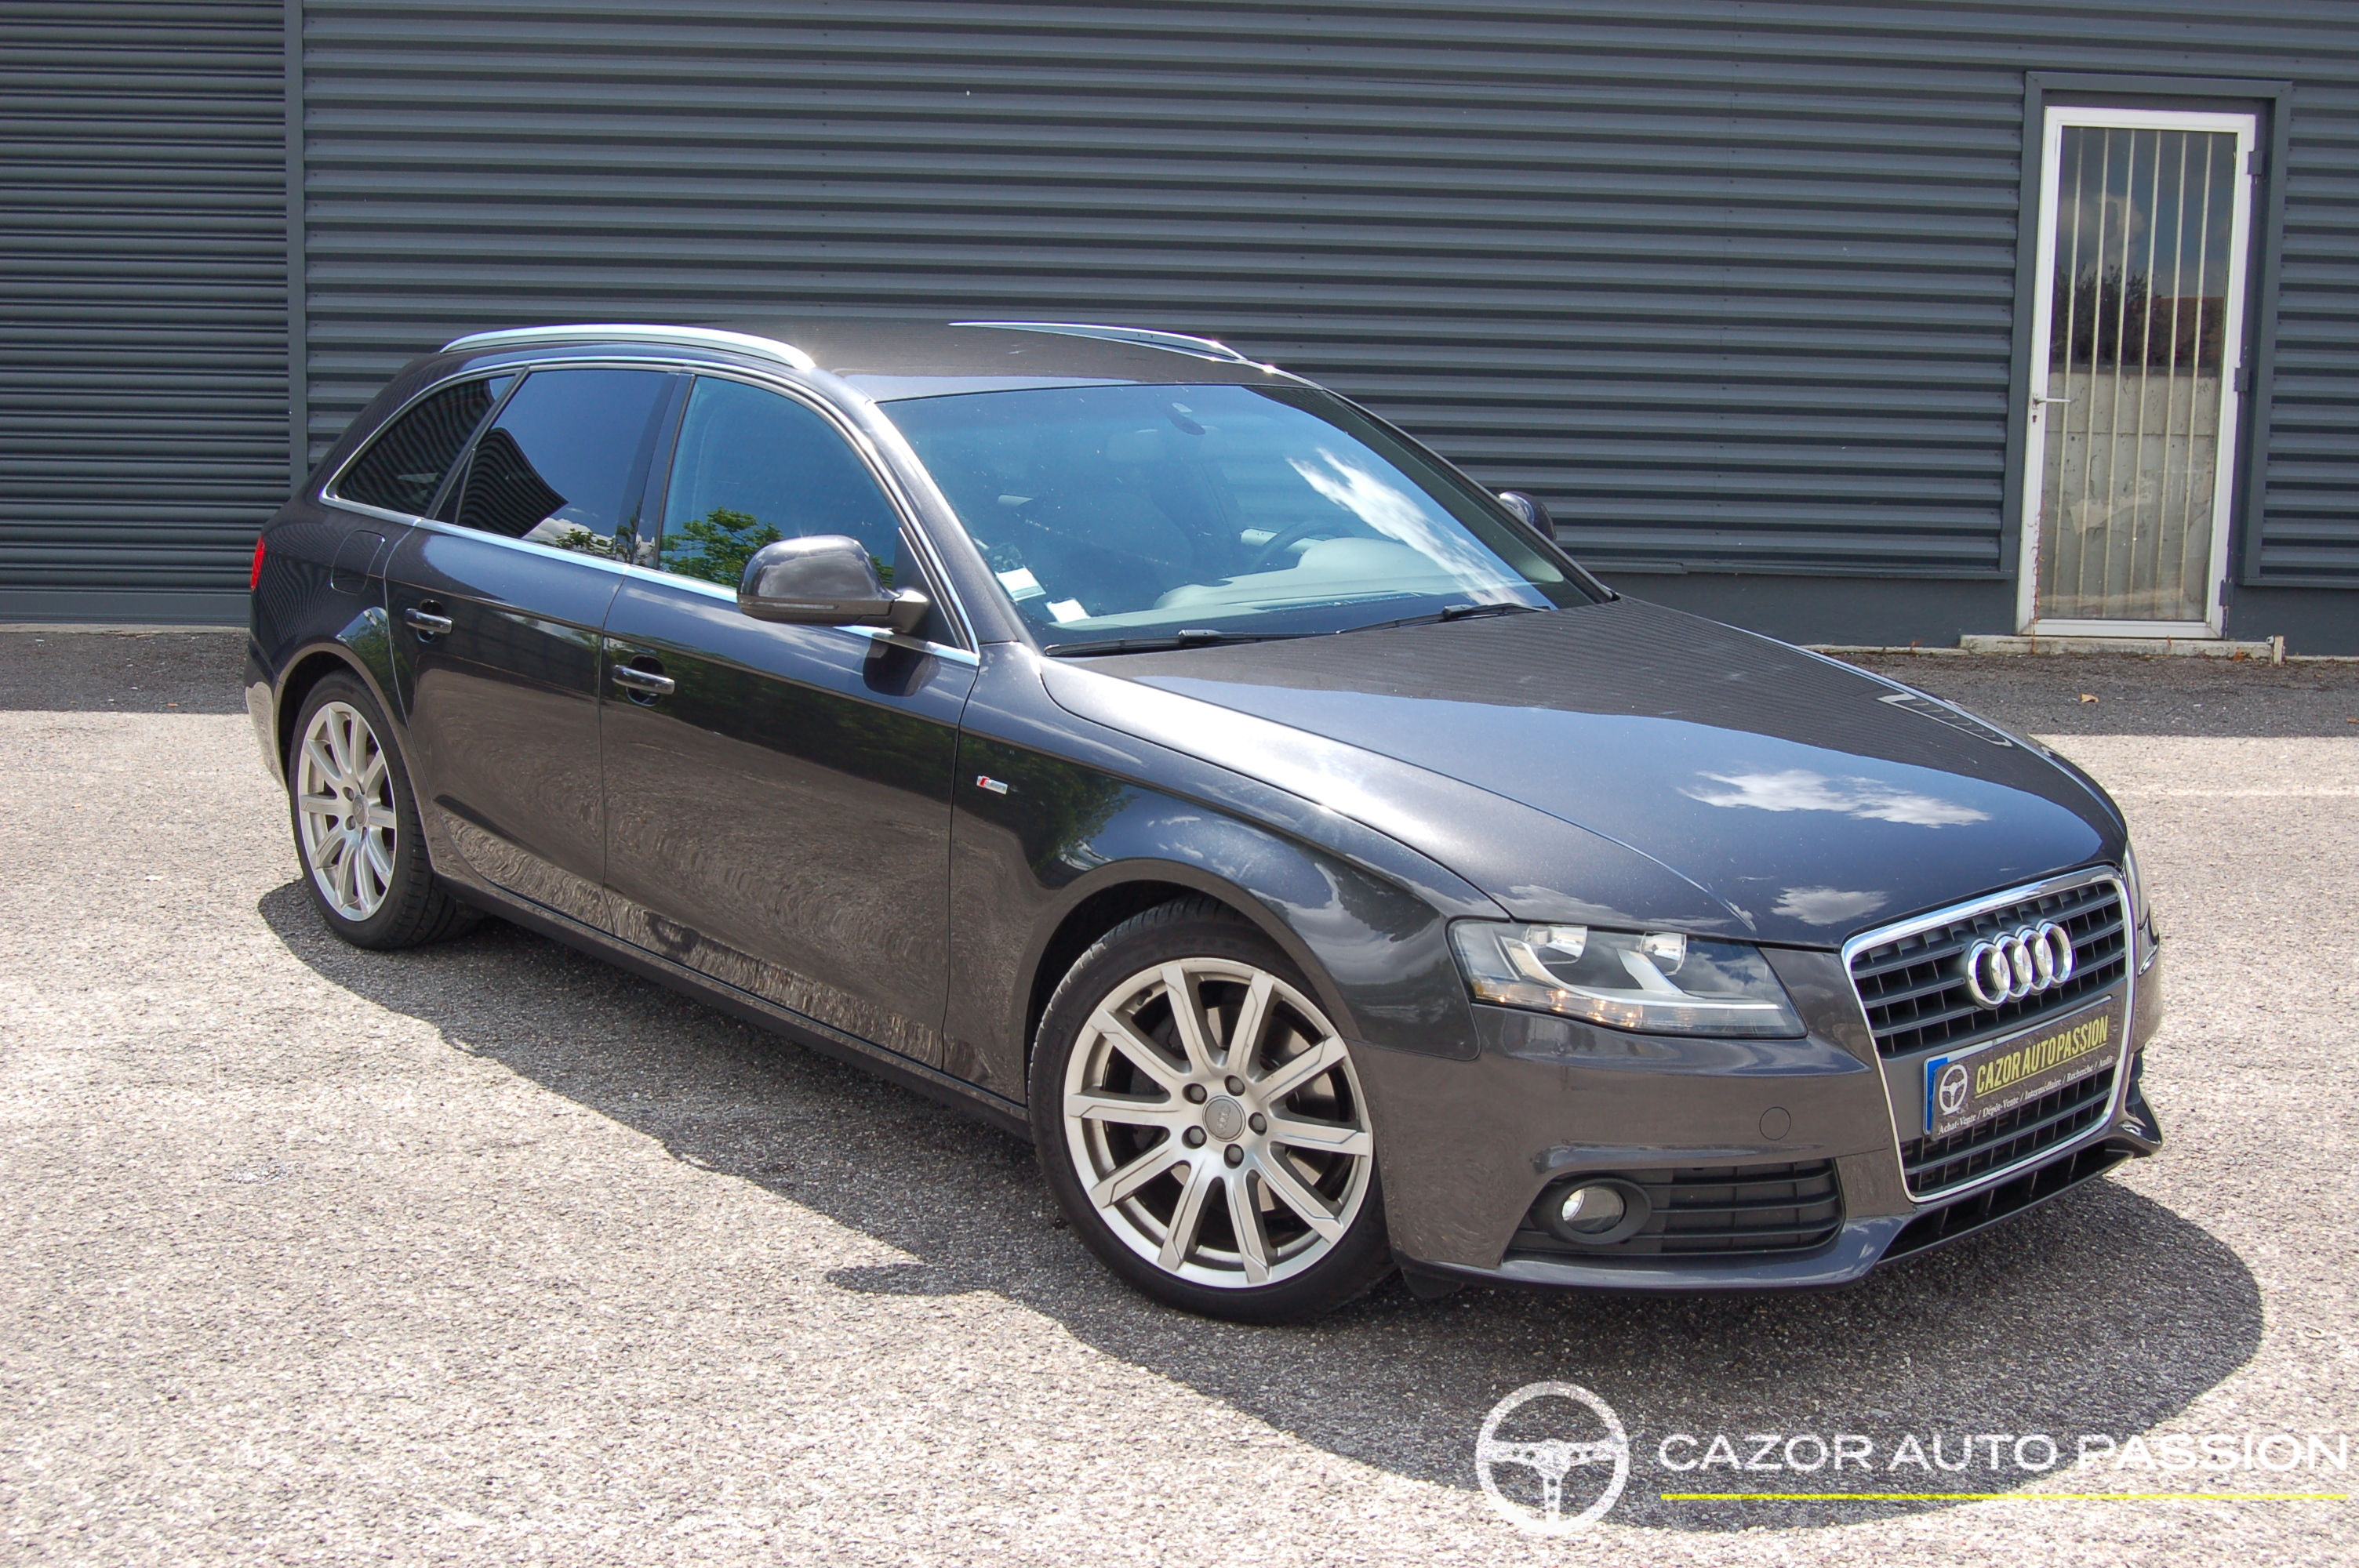 audi a4 avant v6 2 7 tdi 190ch s line bvm6 cazor auto passion. Black Bedroom Furniture Sets. Home Design Ideas